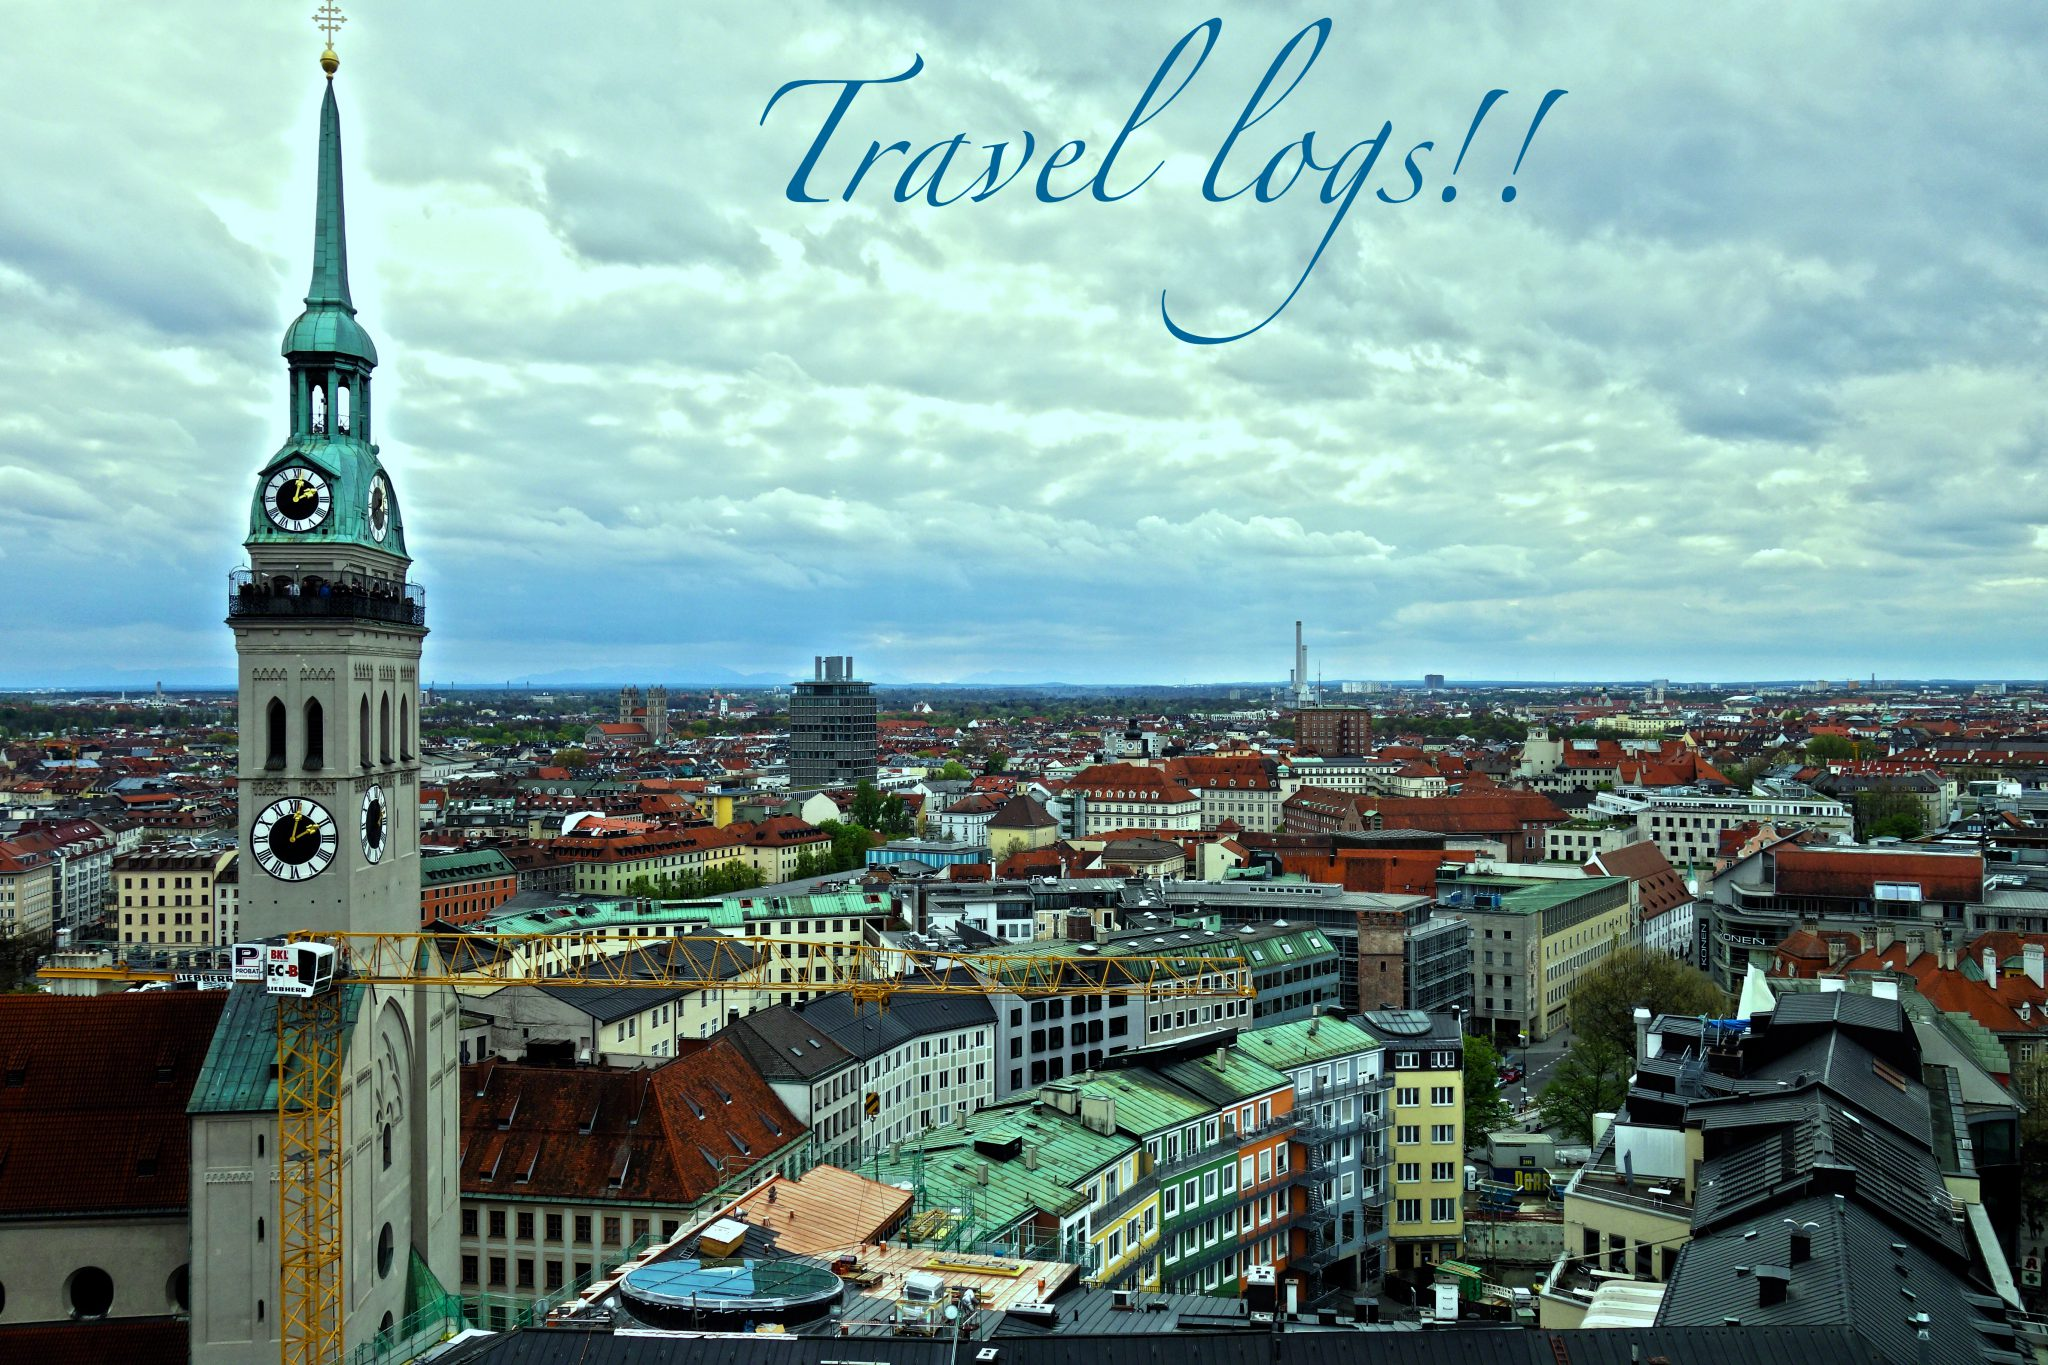 Travel logs